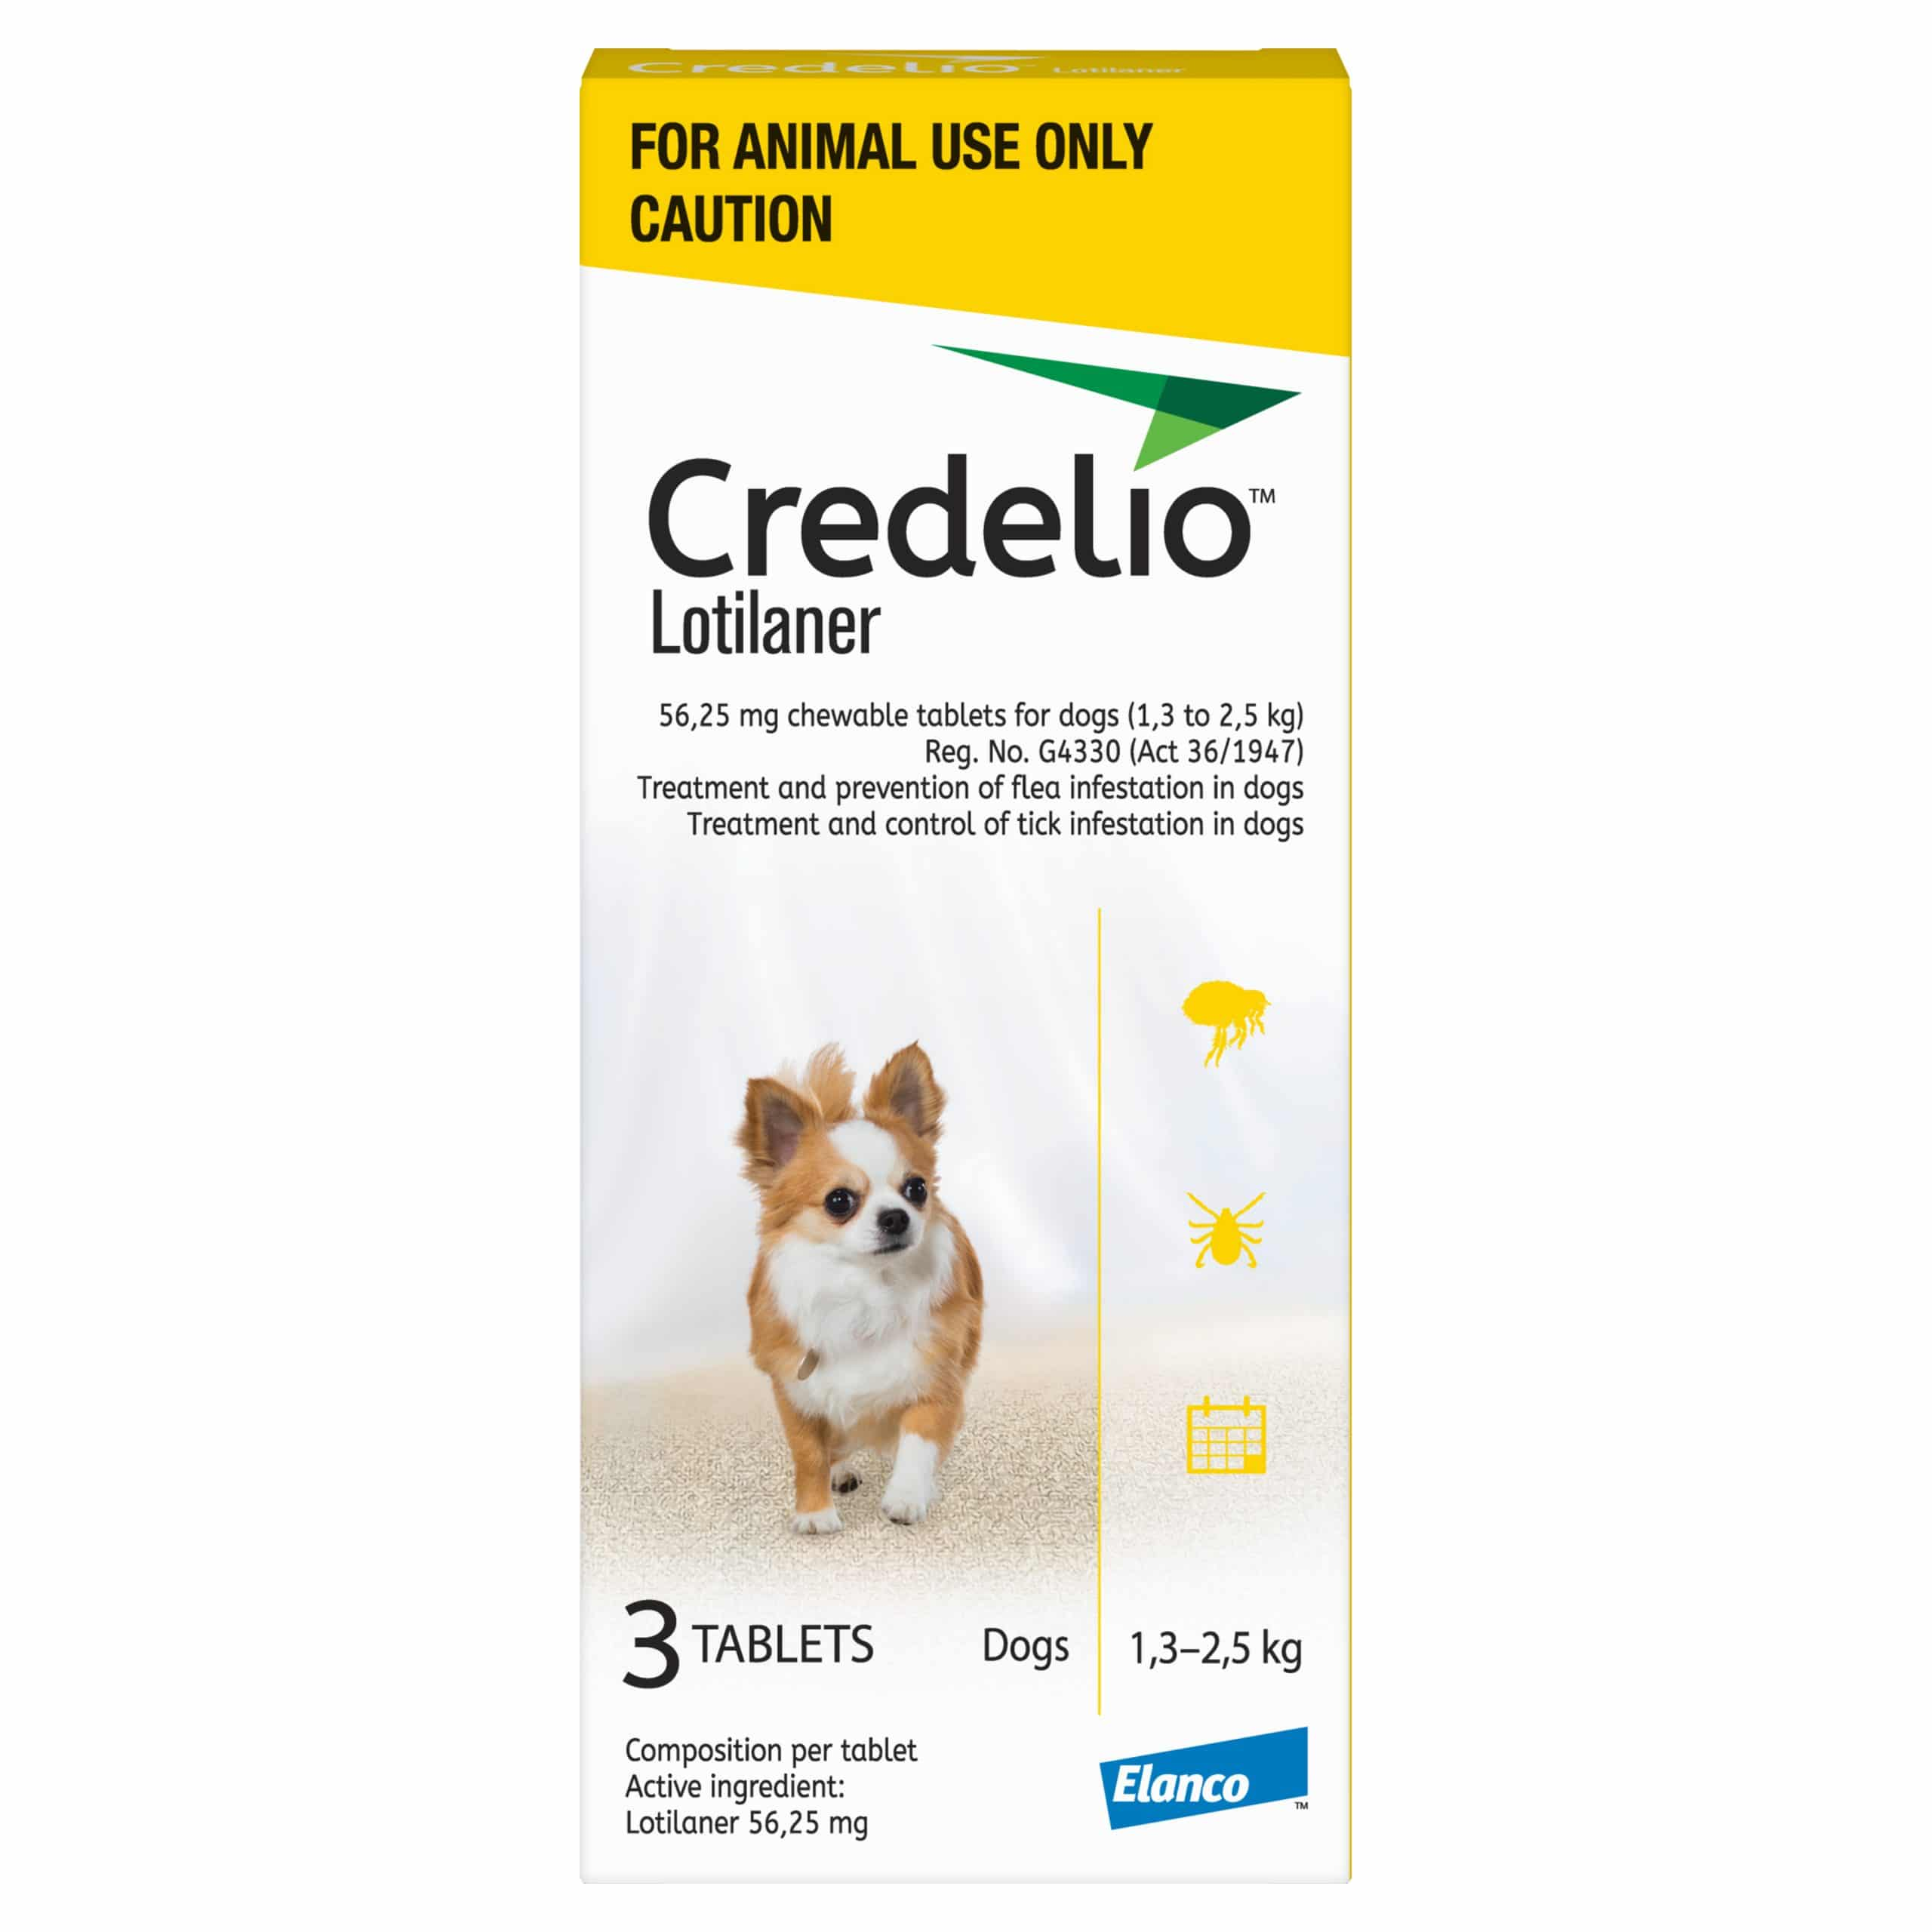 CREDELIO TOY 56.25MG (1.3 - 2.5KG) YELLOW **ON SPECIAL** - While stocks last - Product expires 08/2021